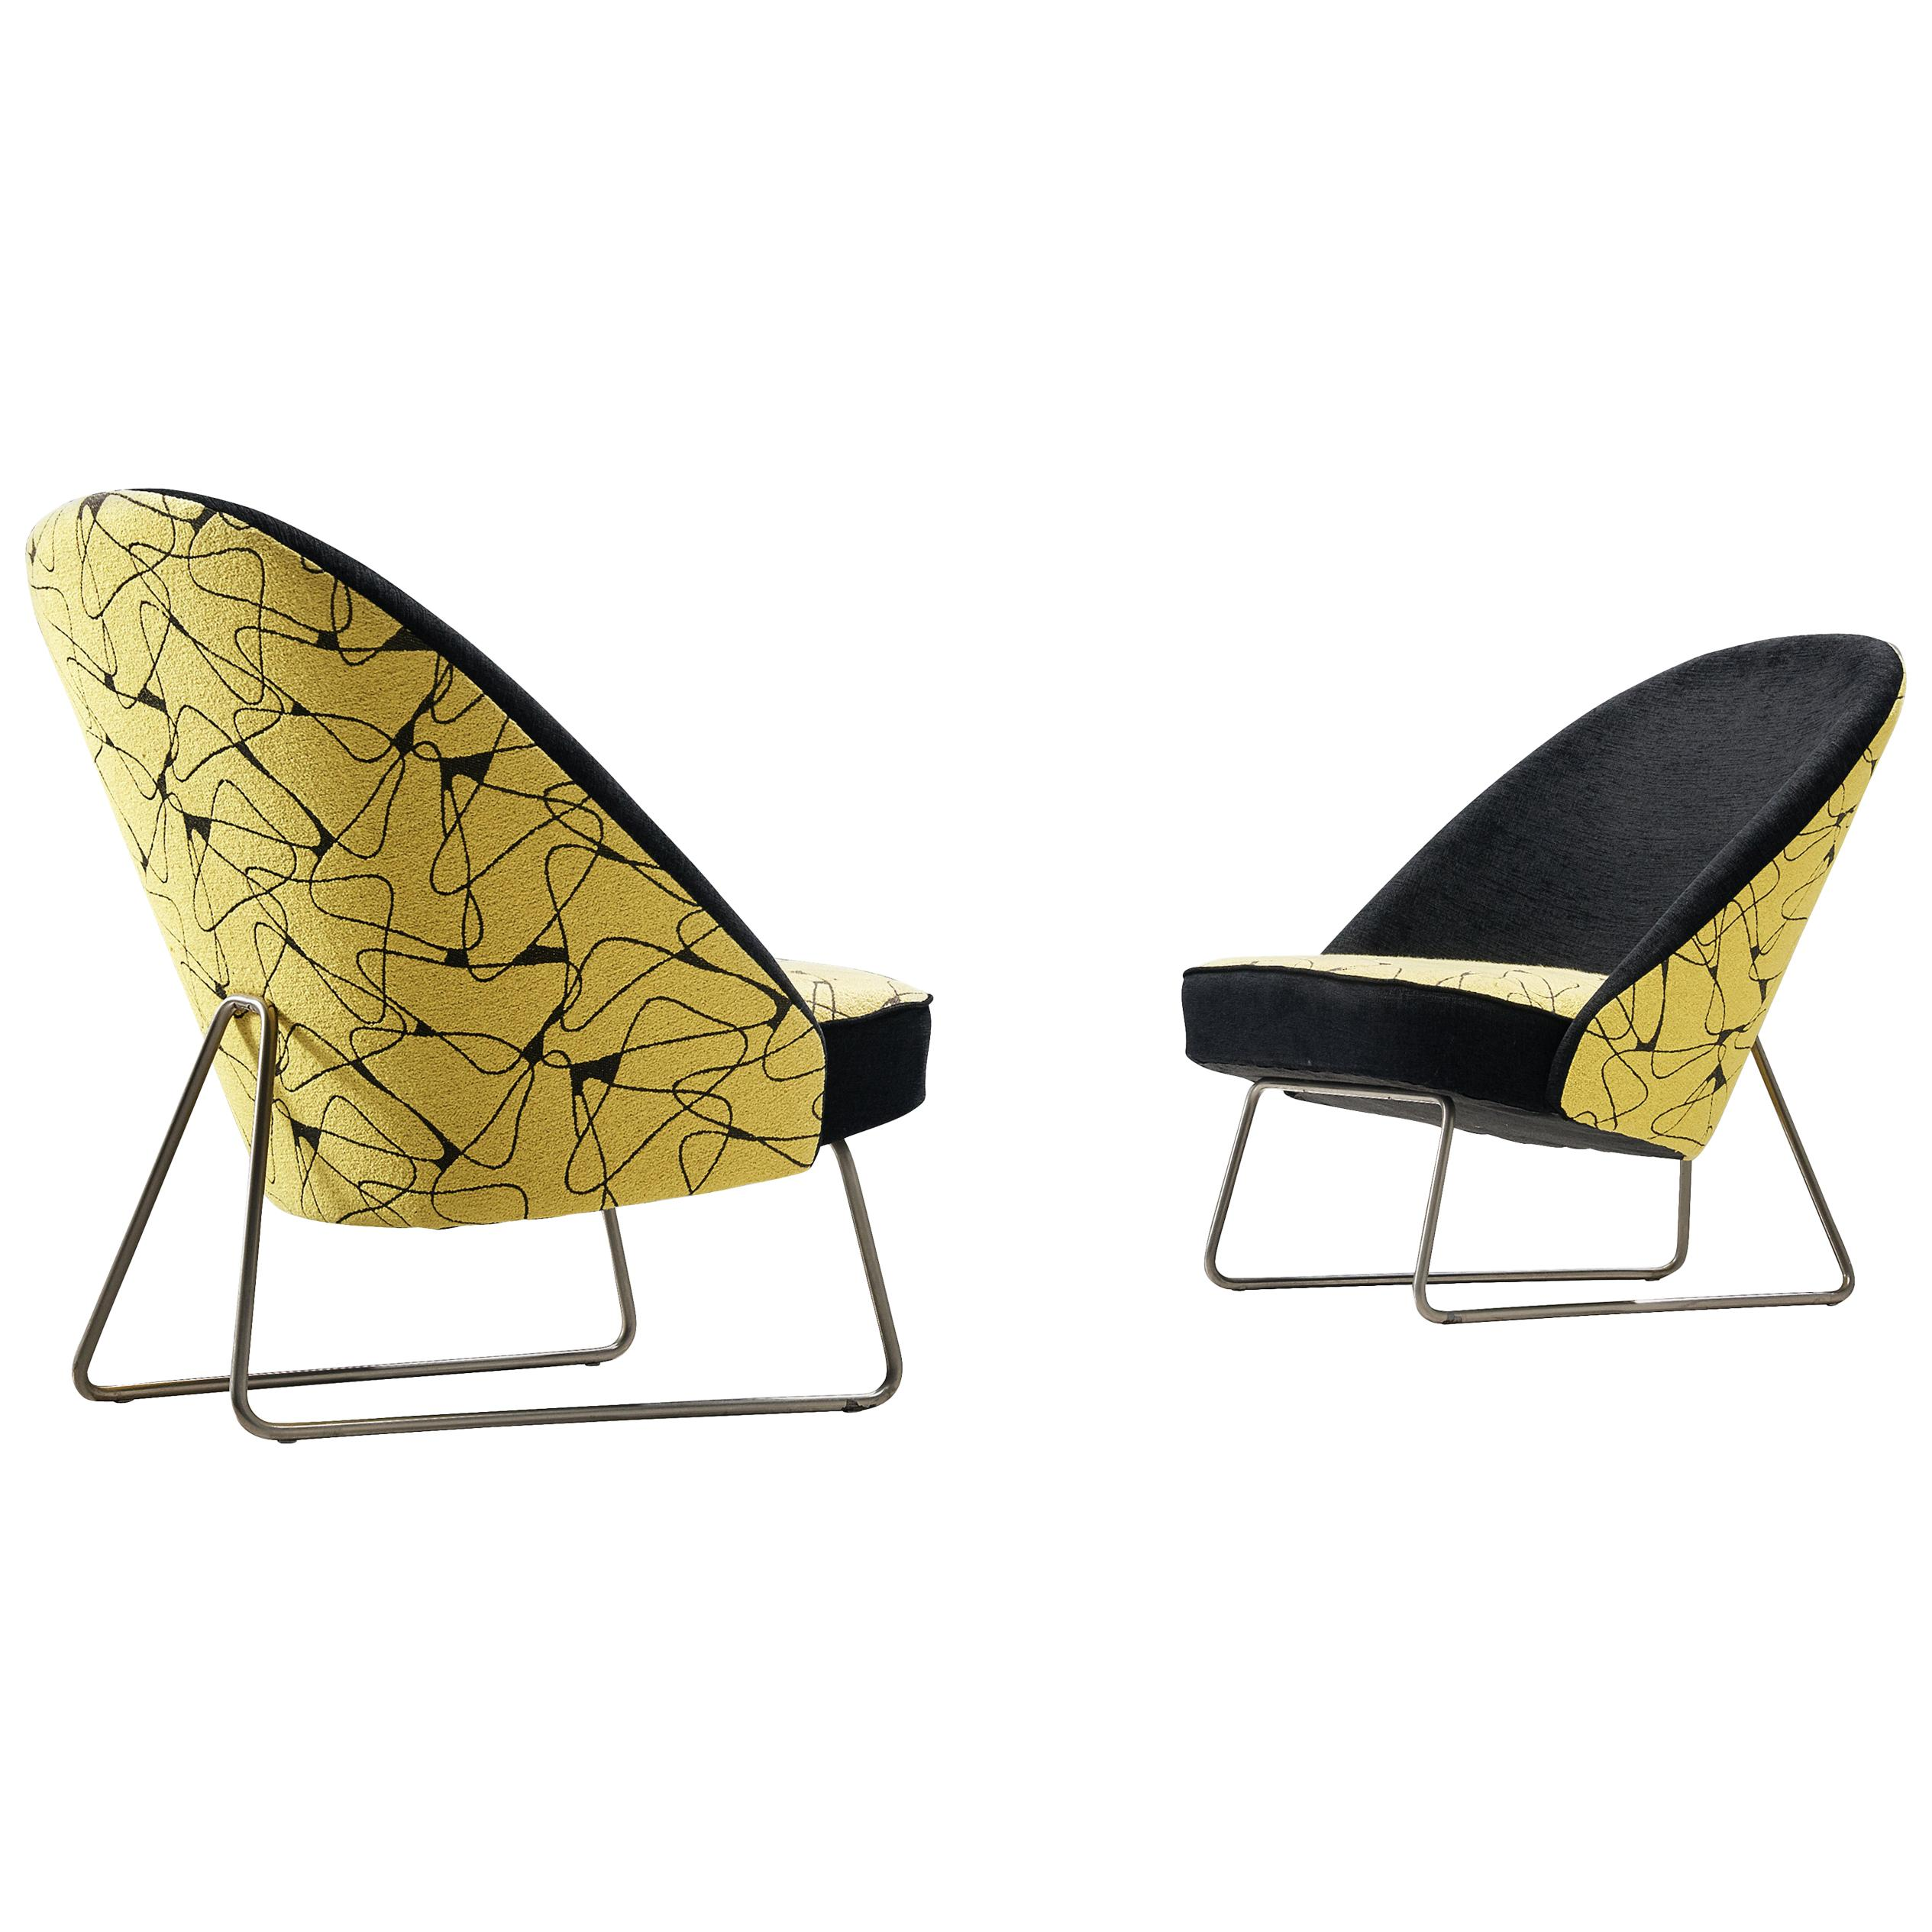 Pair of Theo Ruth Lounge Chair Model 115 in Patterned Fabric